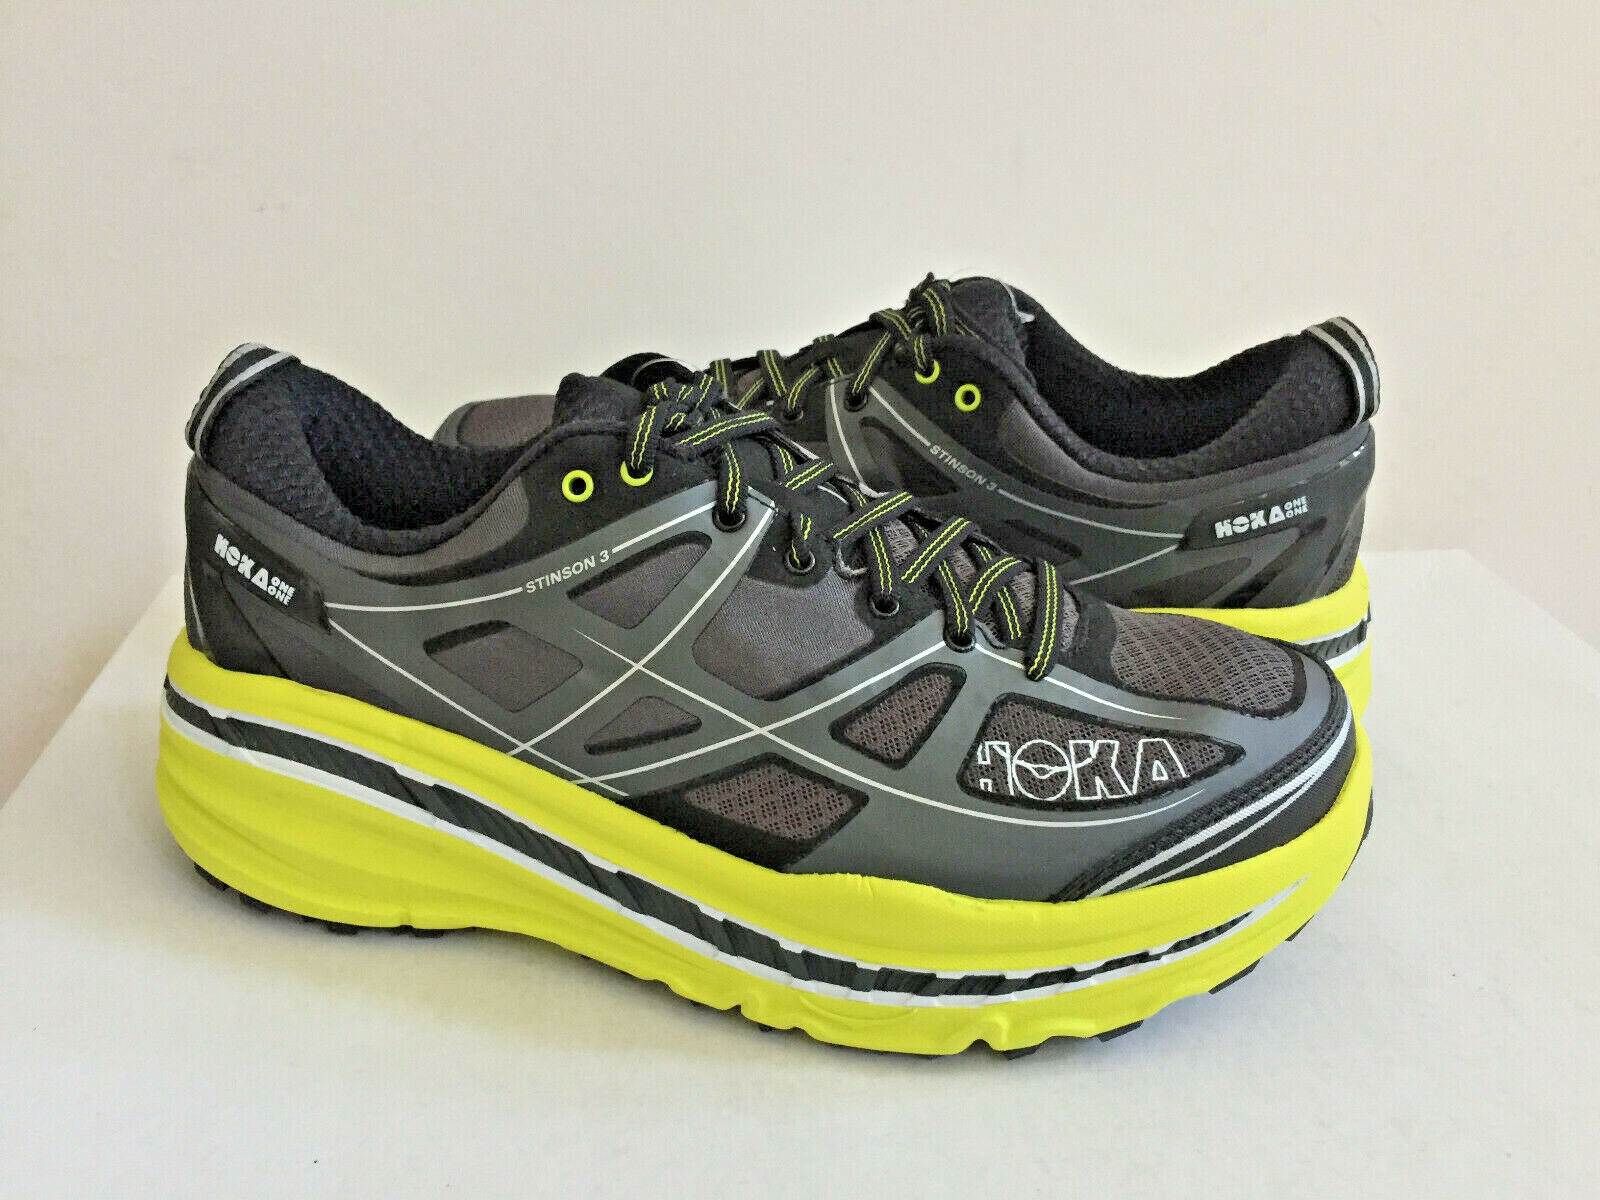 HOKA ONE UOMINI STINSON 3 ATR GRY   CITRUS SHESUS 9   EU 422  3   UK 8.5